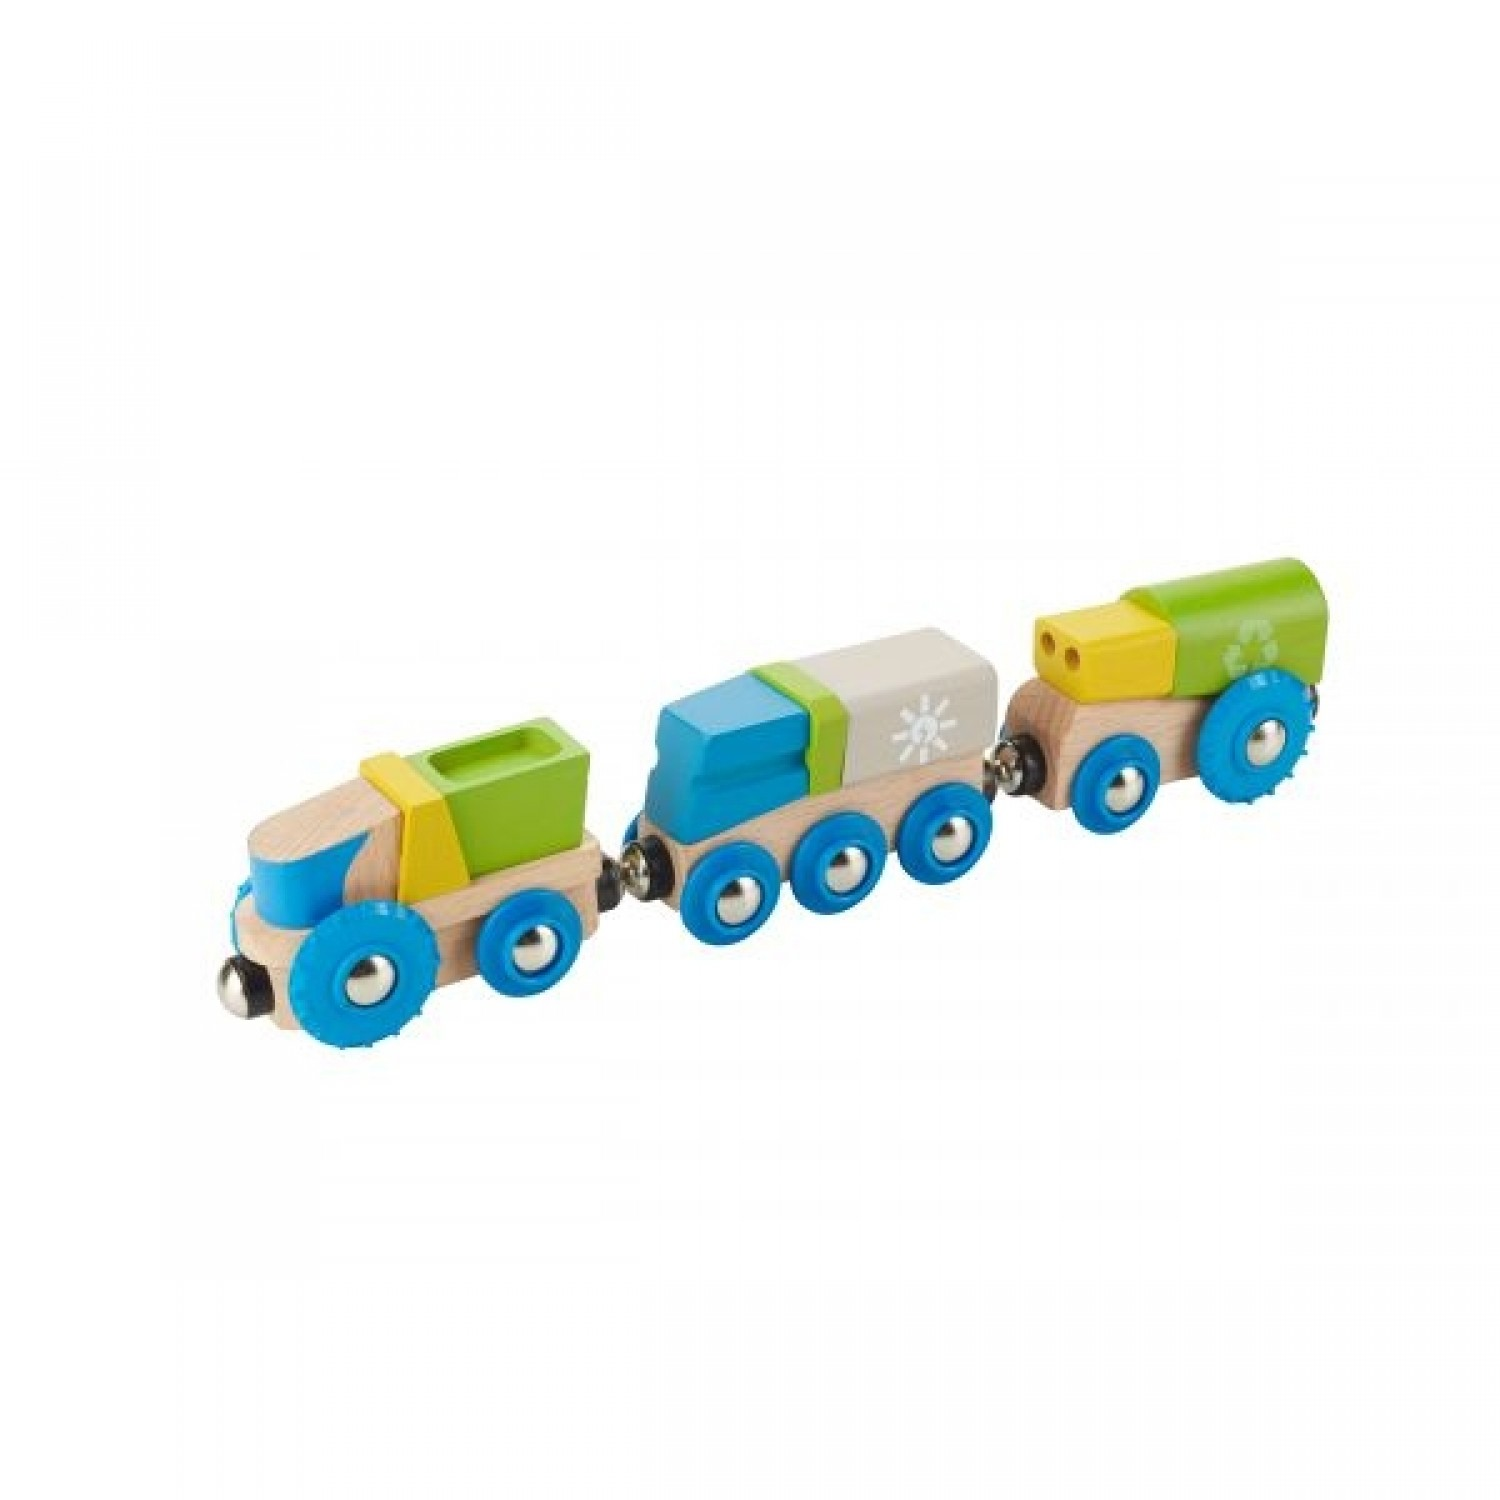 EverEarth recycling train made of FSC wood